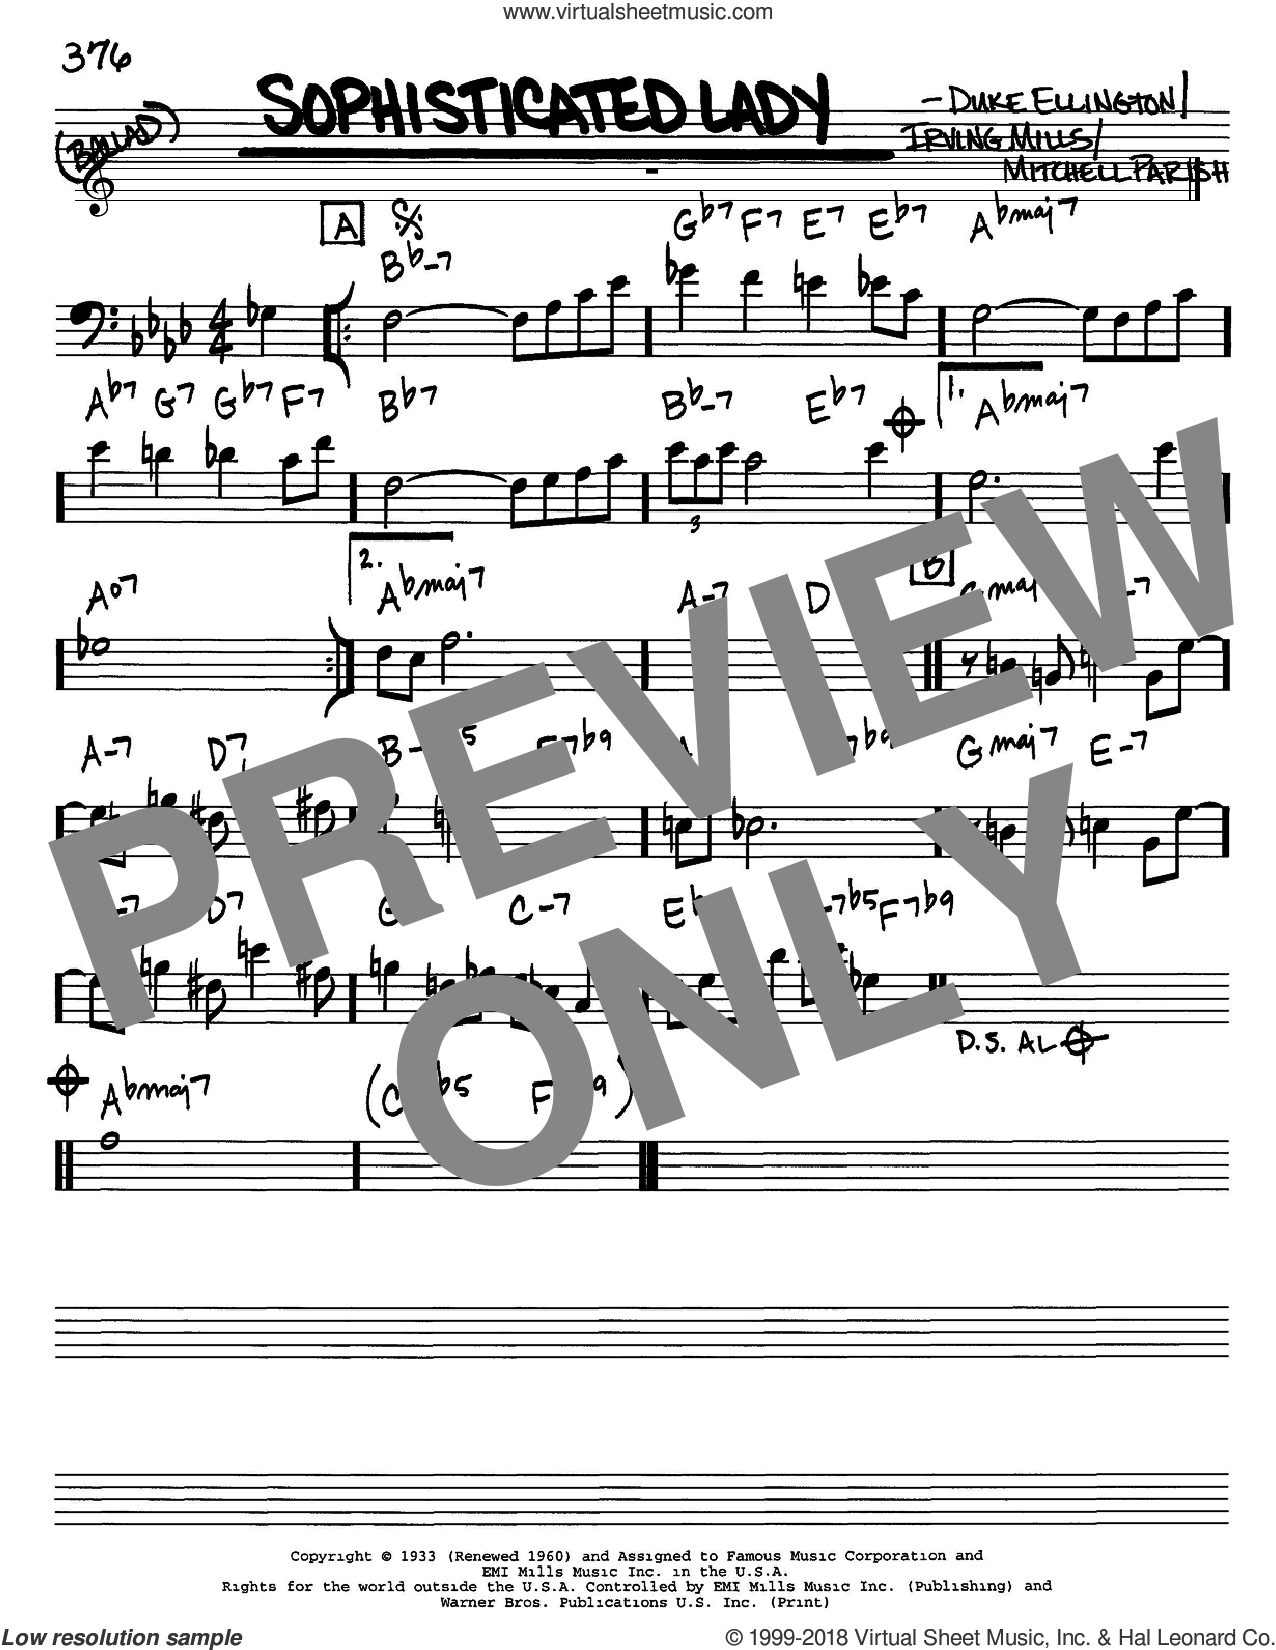 Sophisticated Lady sheet music for voice and other instruments (bass clef) by Duke Ellington, Irving Mills and Mitchell Parish, intermediate. Score Image Preview.